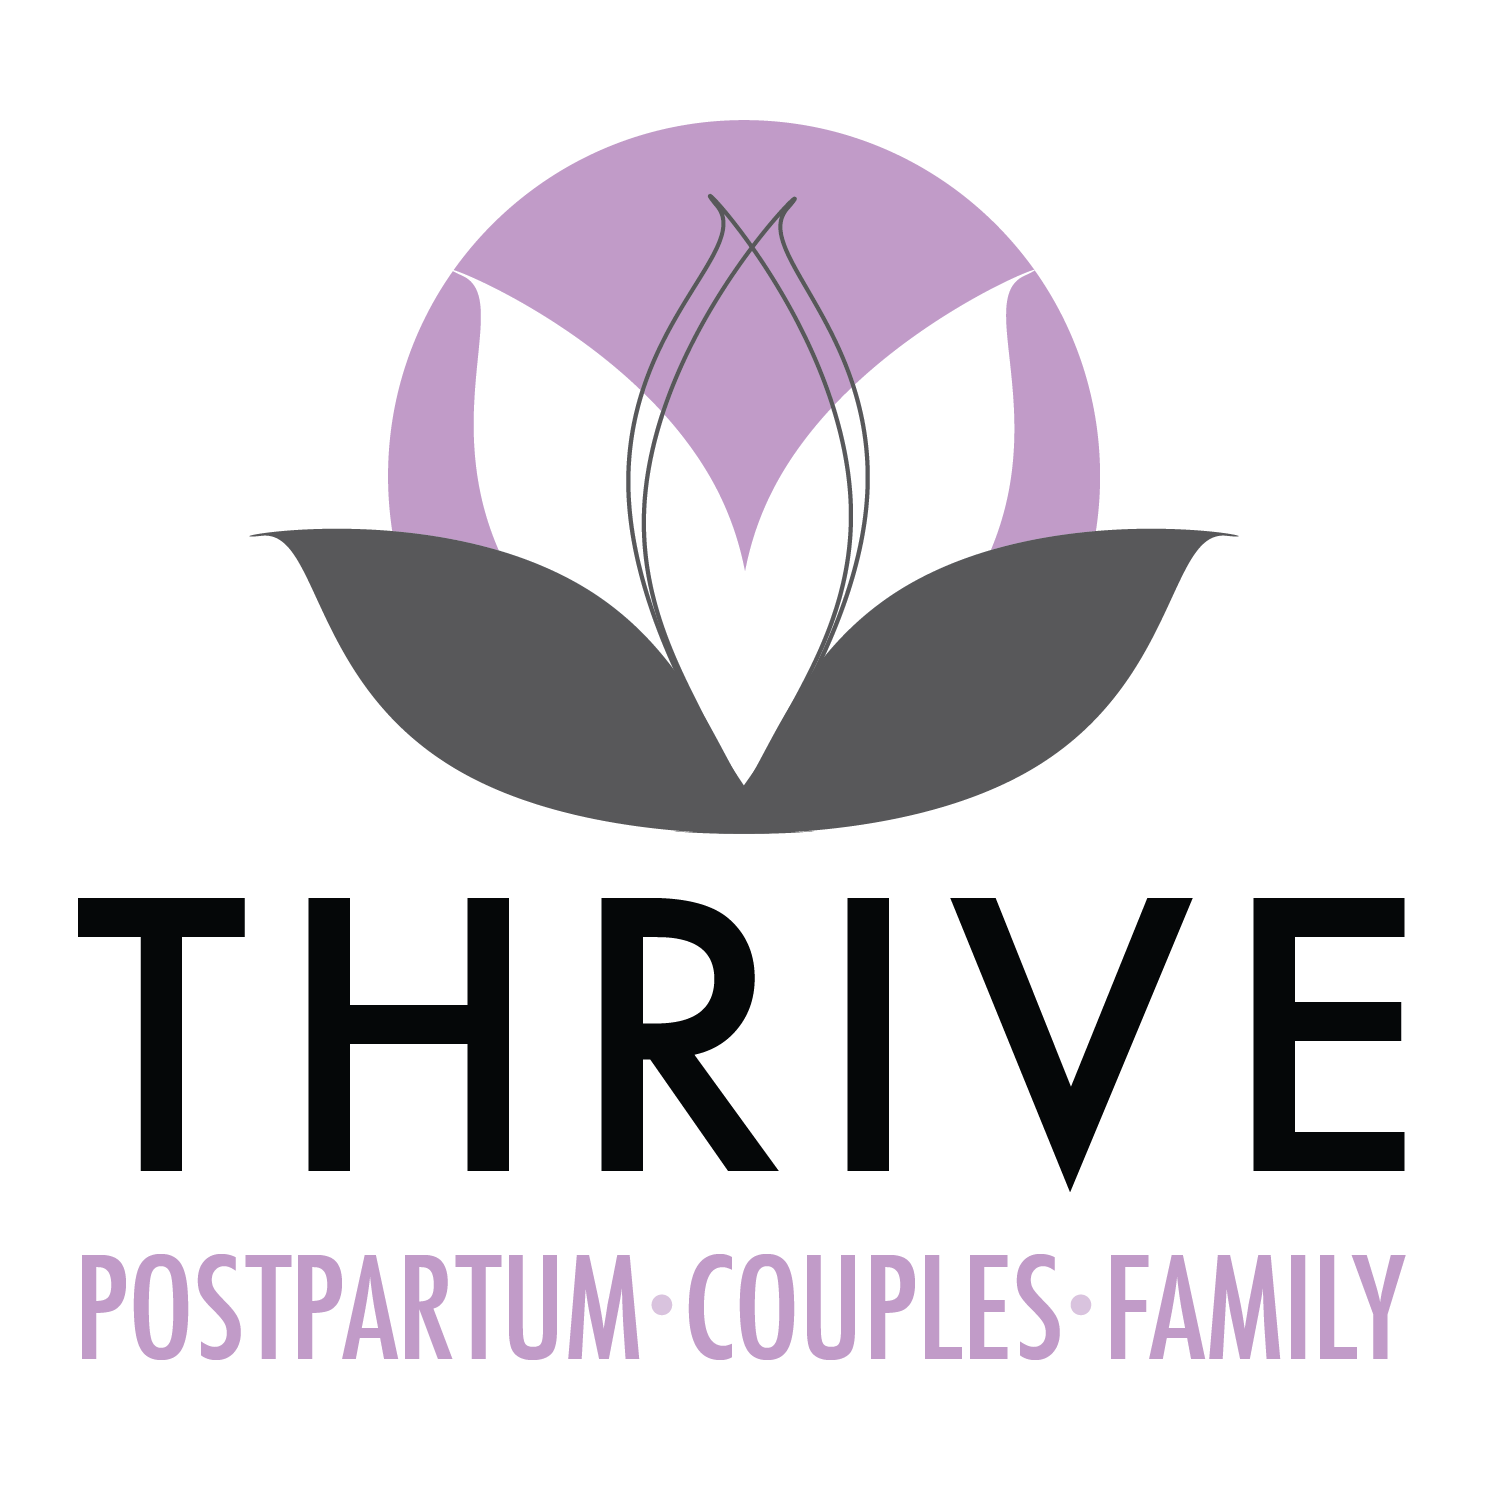 Thrive-Postpartum-Couples-Family-Logo-Primary-Web-01.png